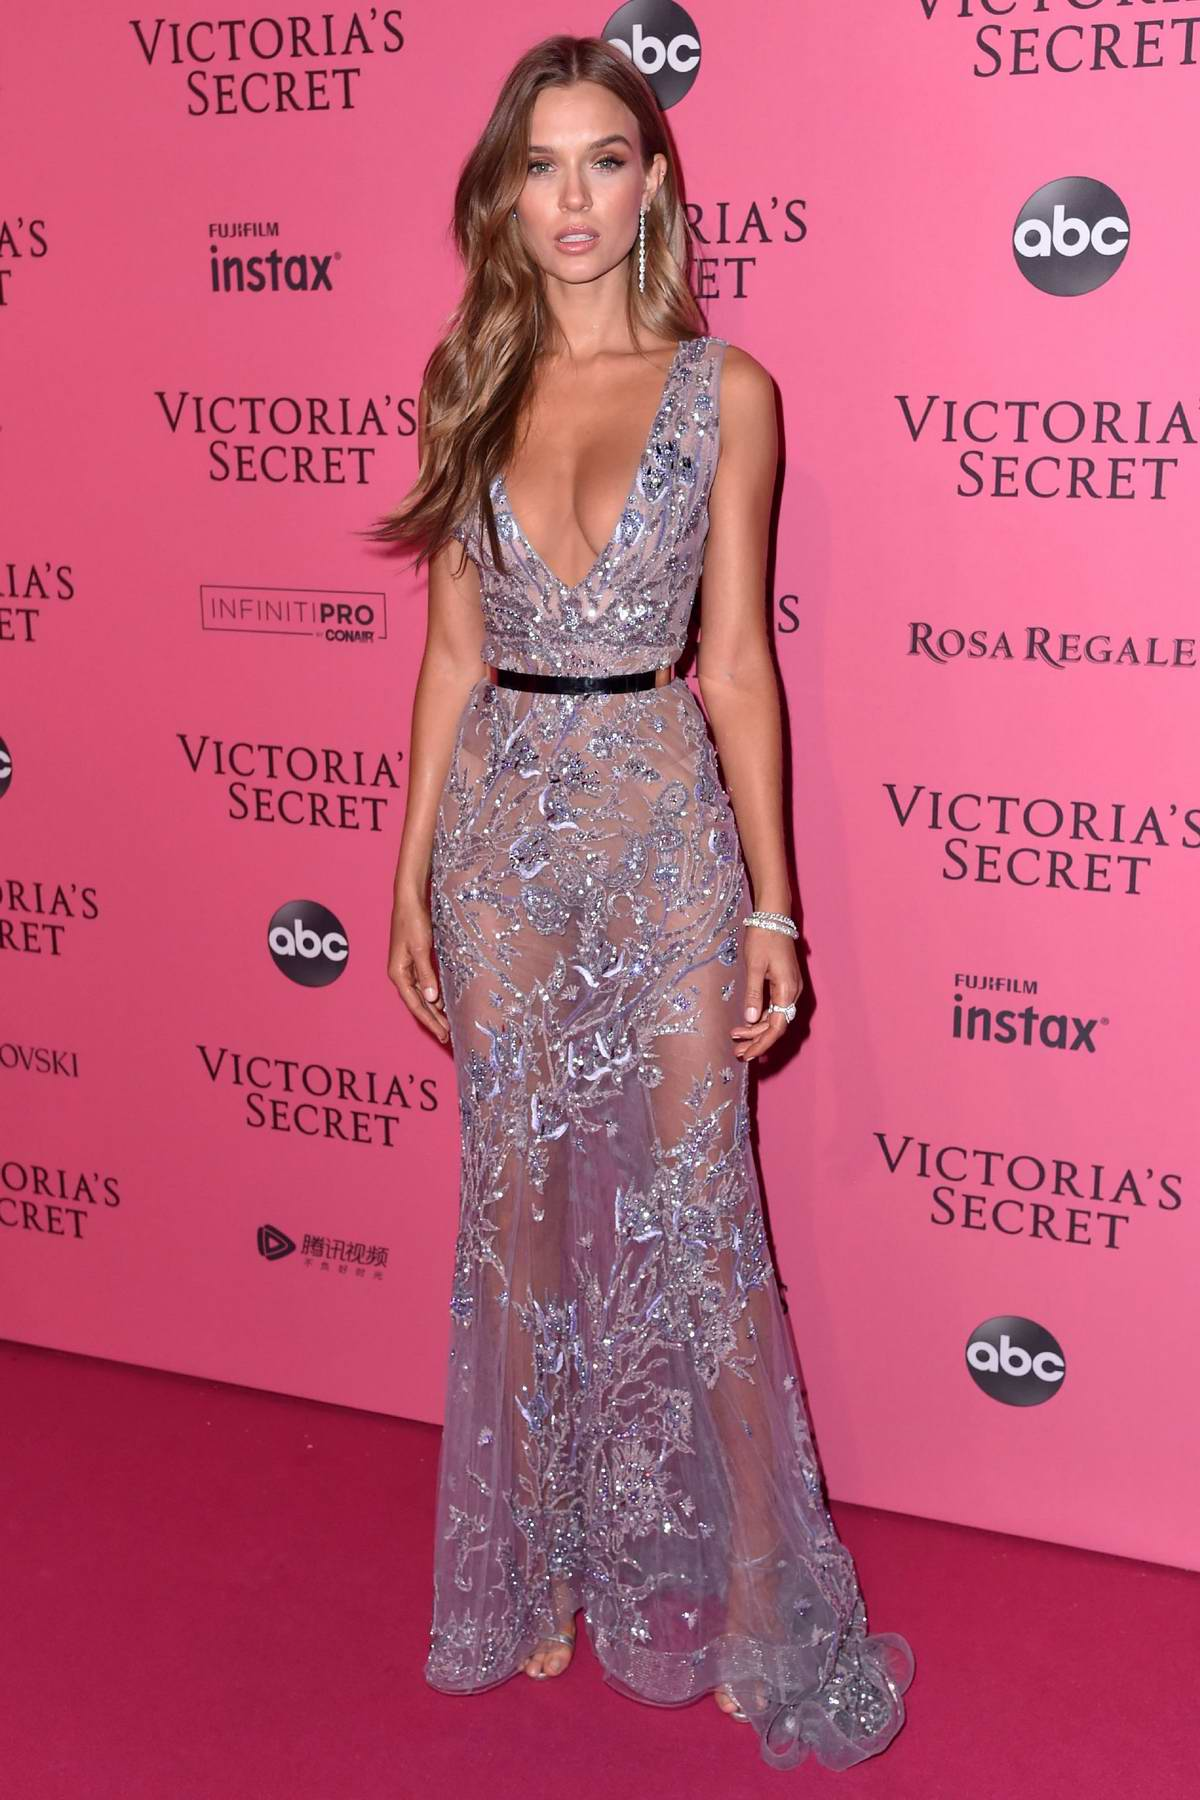 Josephine Skriver attends the 2018 Victoria's Secret Fashion Show After-Party in New York City